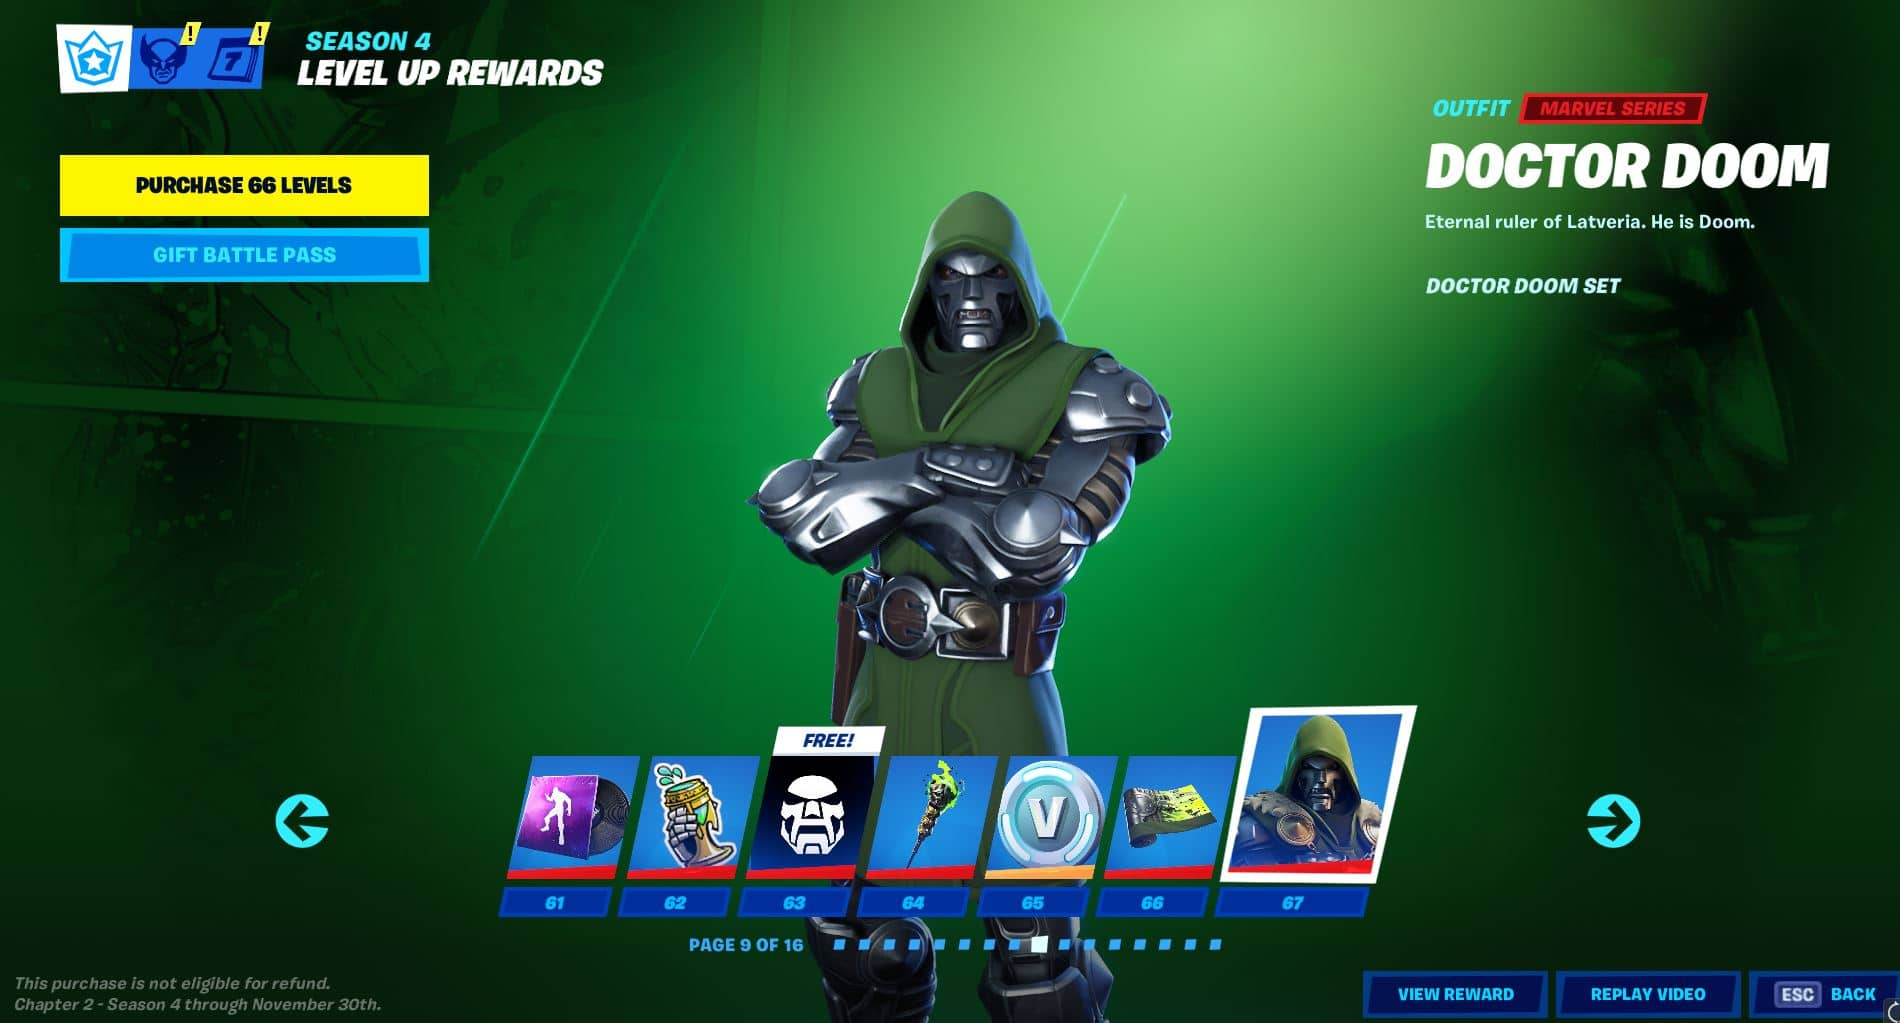 Fortnite Chapter 2, Season 4 Battle Pass Level 61 - 67